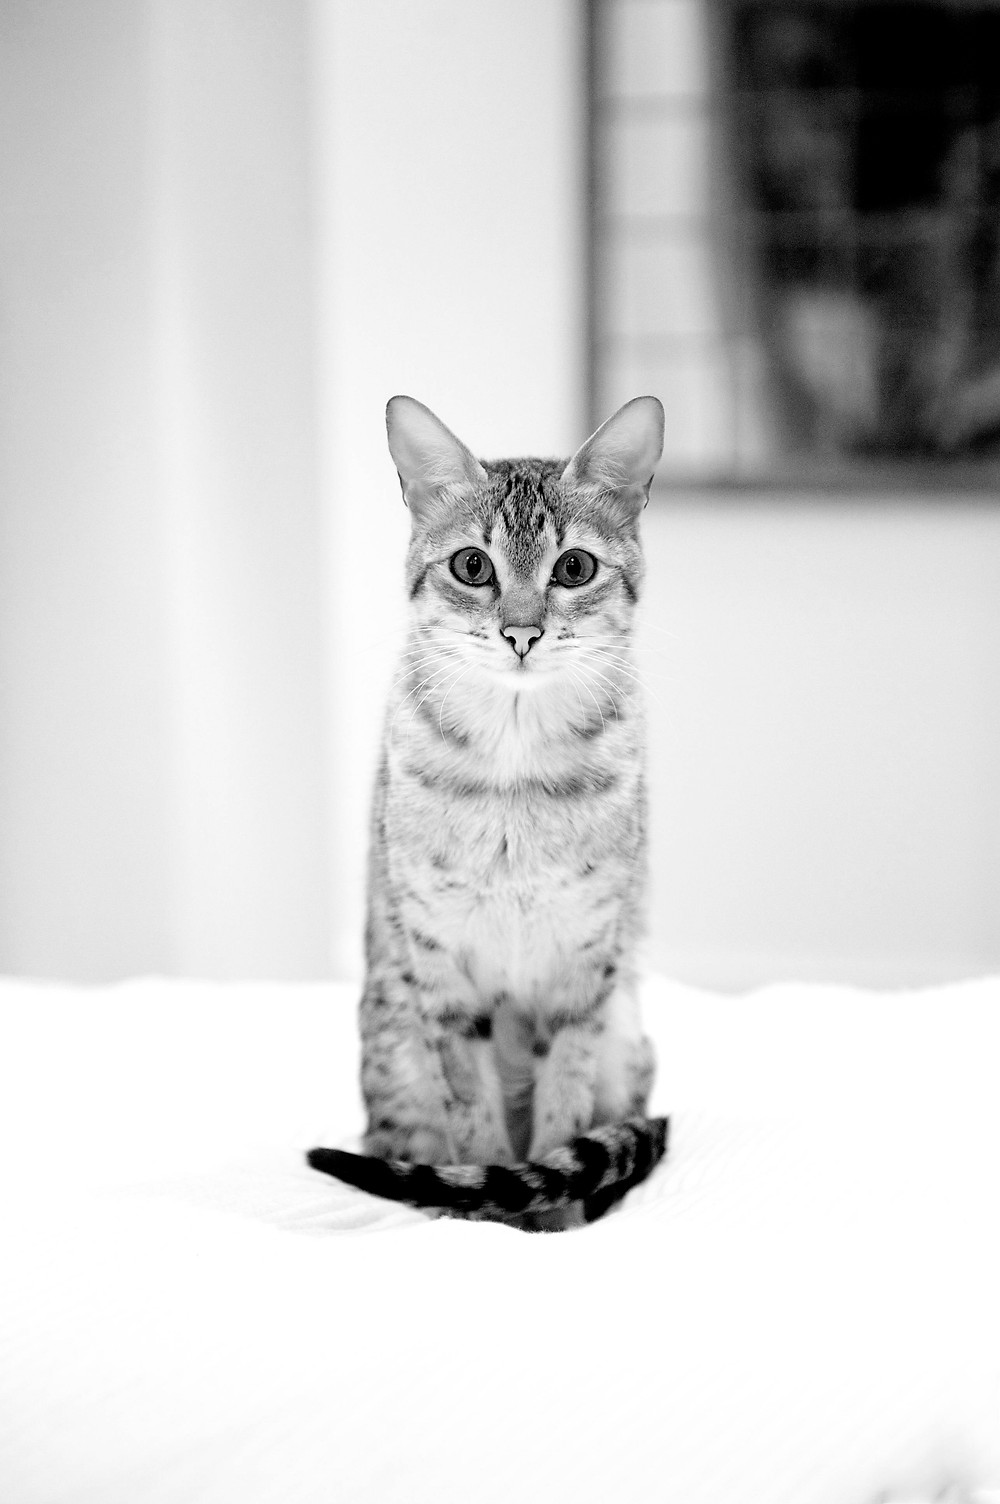 Cat photography in Oxford - Yrael the cat in stunning black and white